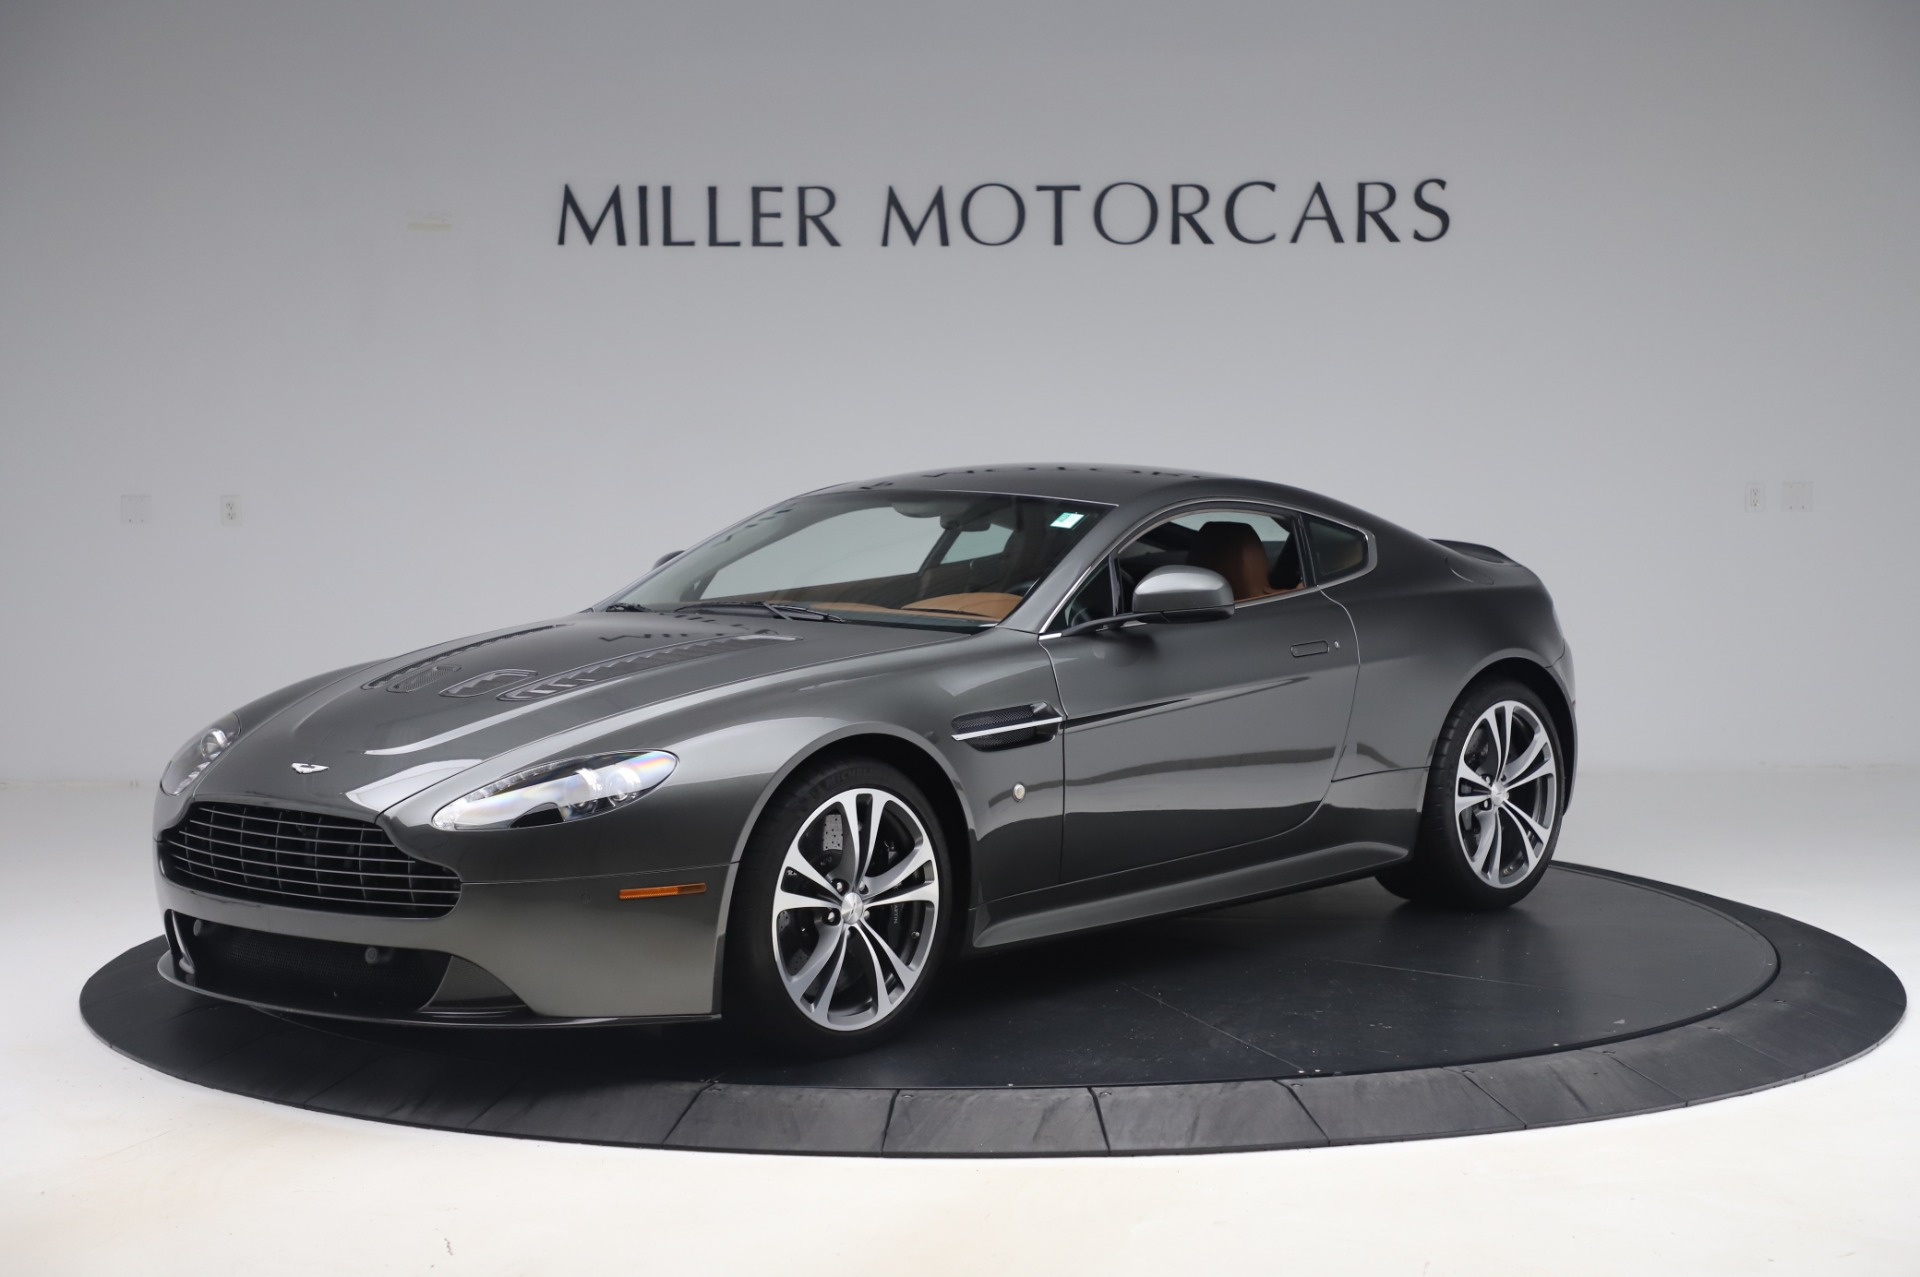 Used 2011 Aston Martin V12 Vantage Coupe for sale $108,990 at Aston Martin of Greenwich in Greenwich CT 06830 1